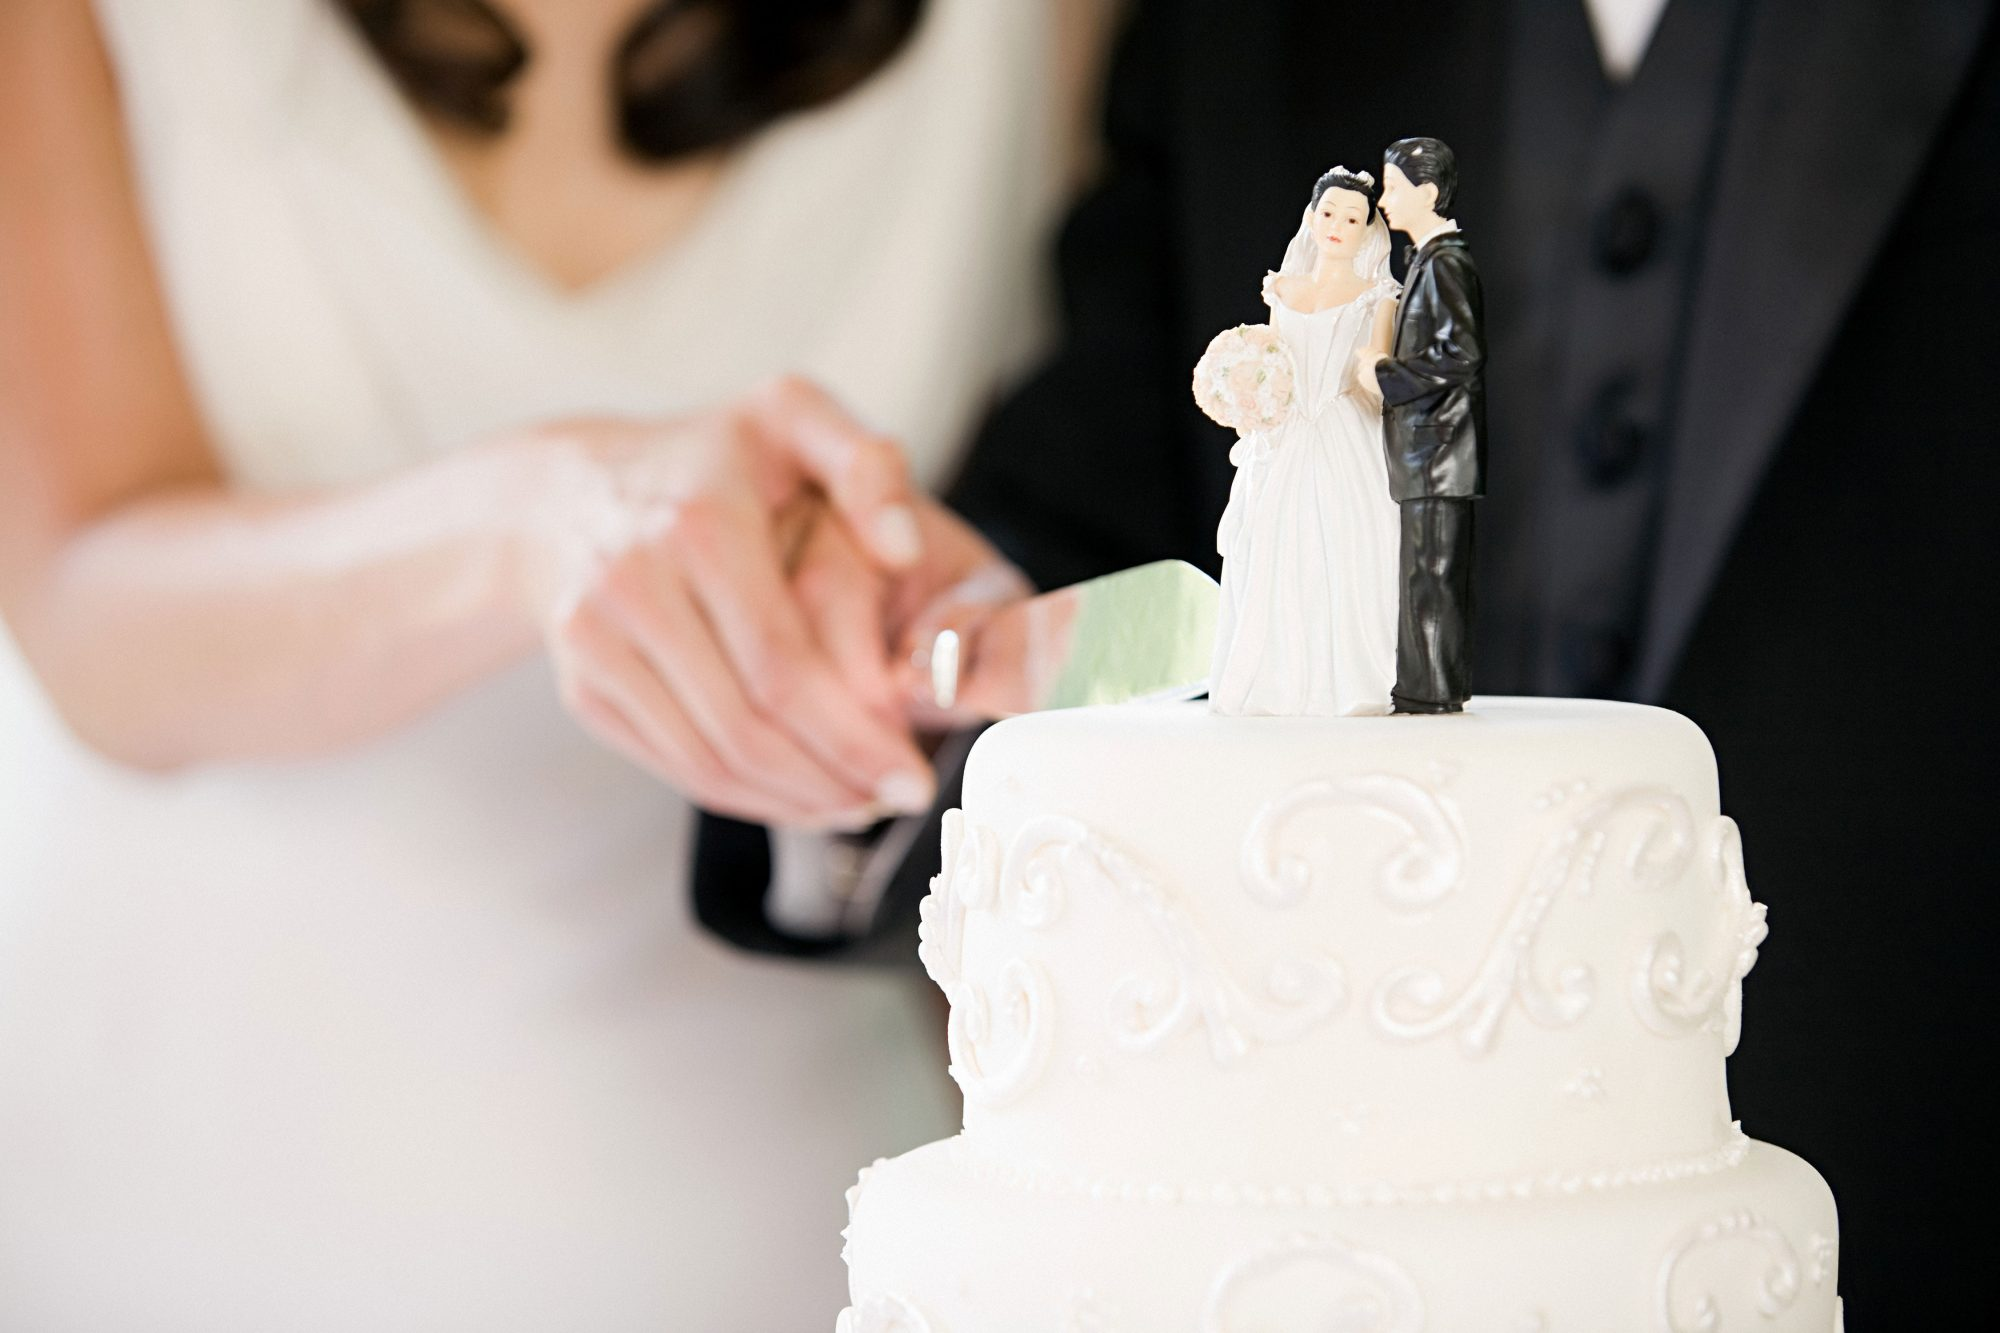 The Origin of Saving Your Wedding Cake